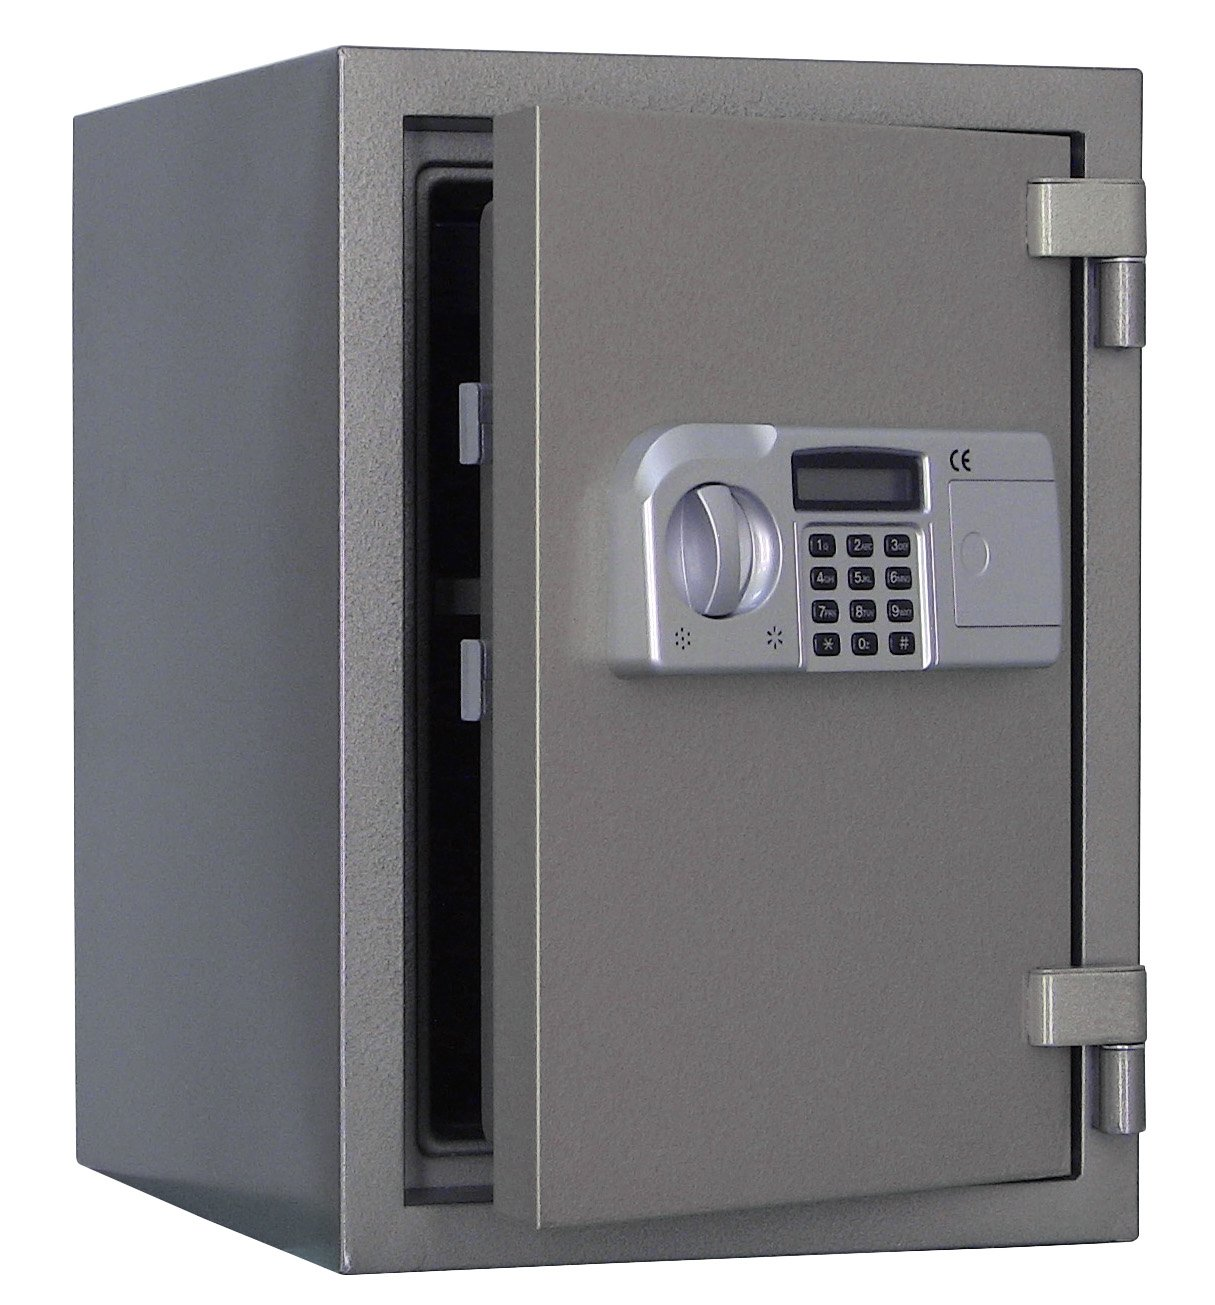 Steelwater AMSWEL-530 2 Hour Fireproof Home and Document Safe by Steelwater Gun Safes